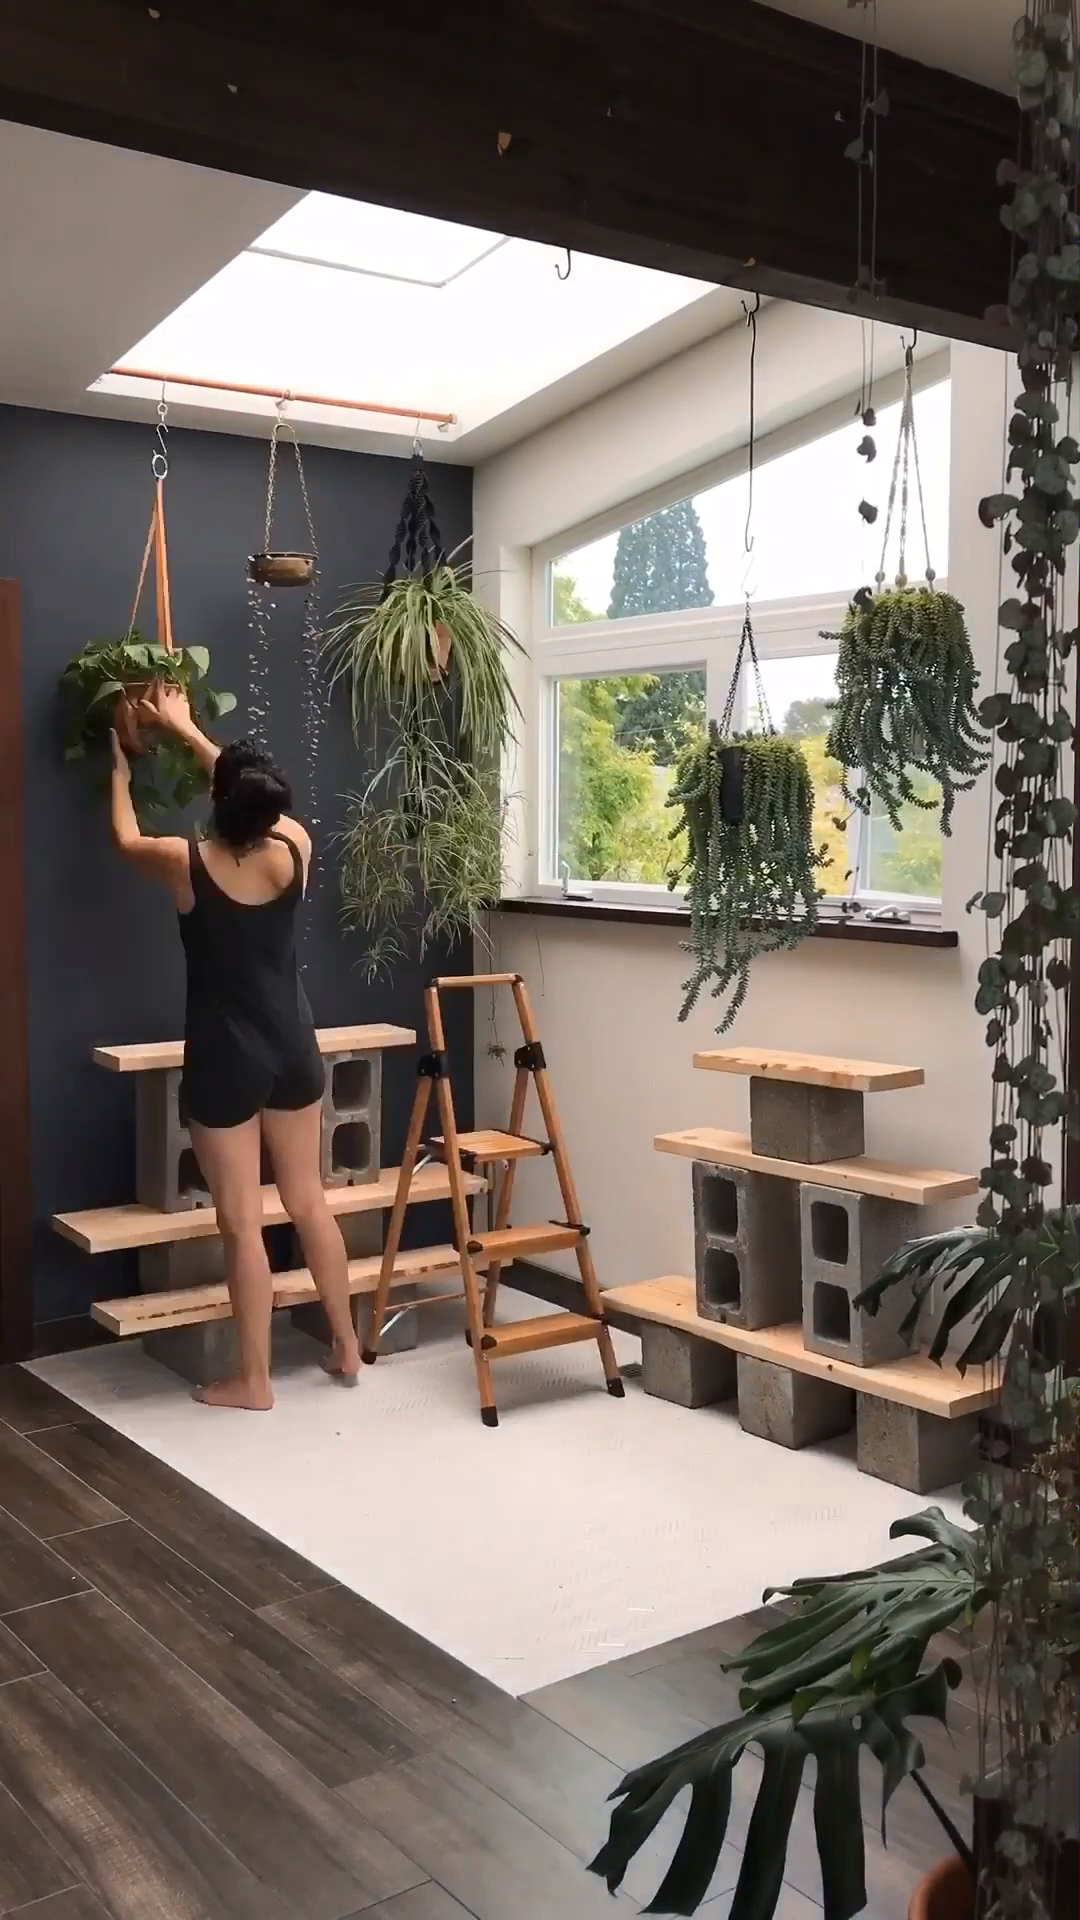 Creating a sacred space in your home not only provides you a sanctuary from the hustle of day to day life, but is essential in your well-being. See the full reveal of my new space on the blog and get my 4 tips on how to design your own space. #sacredelements #ecotherapy #Naturalworldtherapy #selfcare